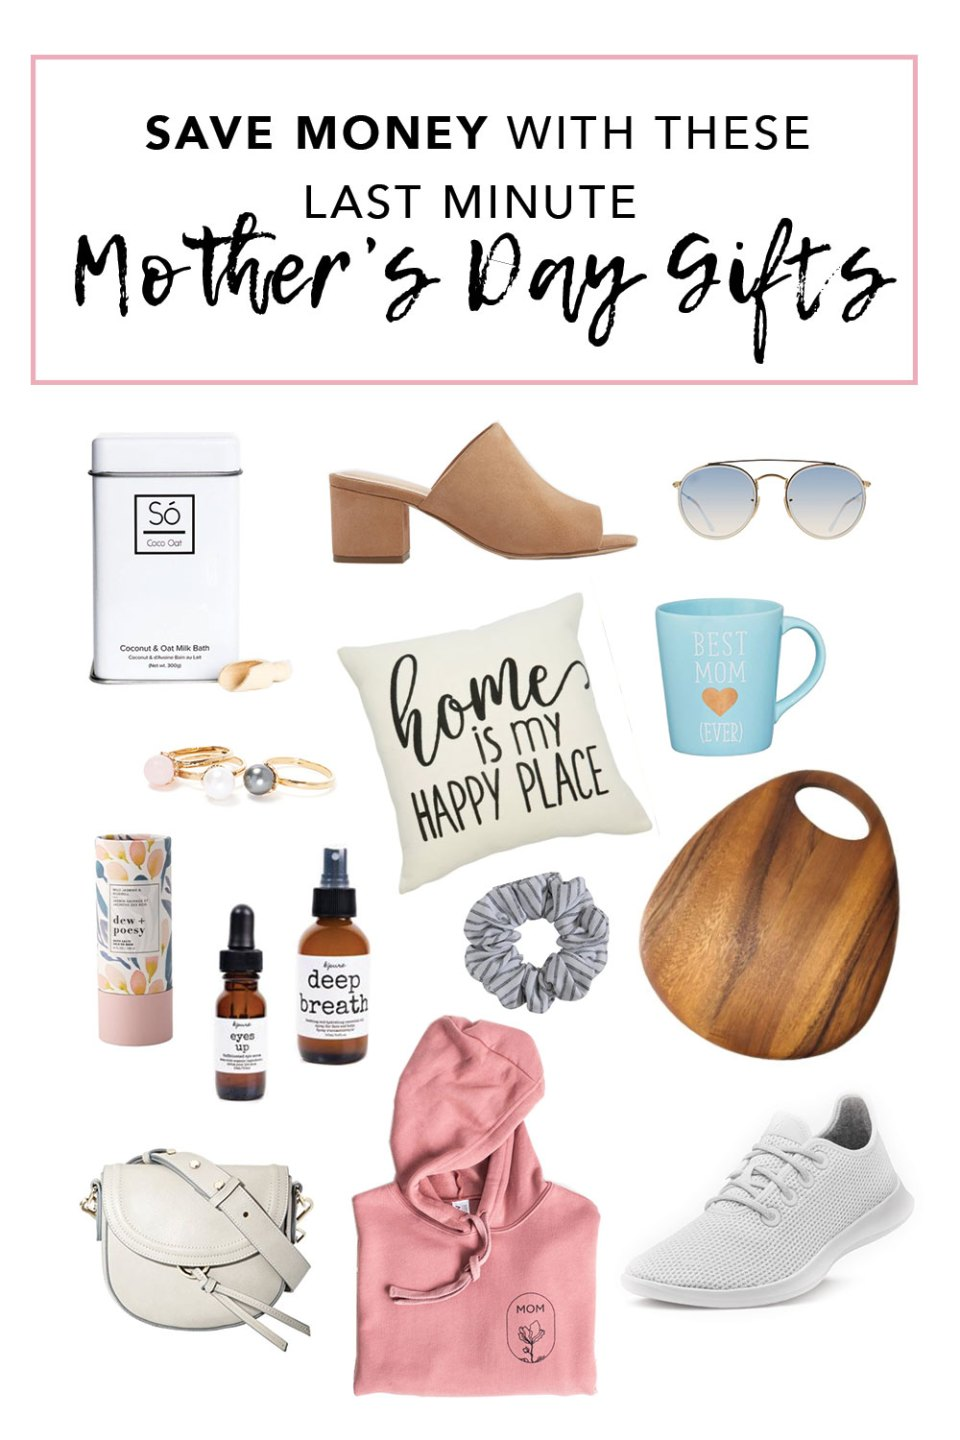 Save Money With these Last minute Mothers Day gifts